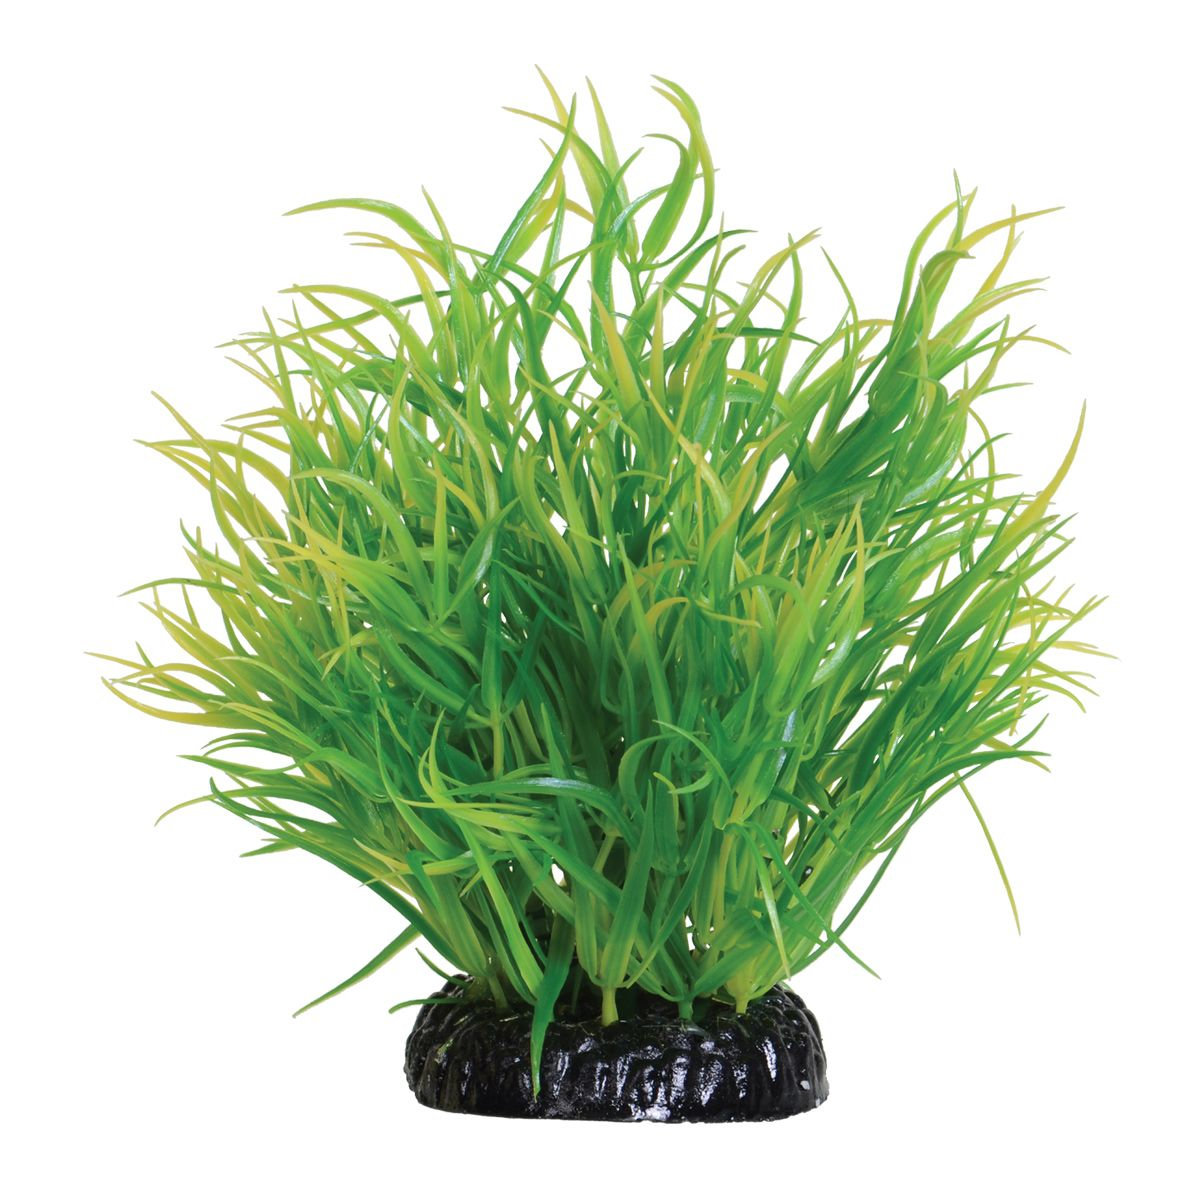 Underwater Treasures Lemon Grass - 6 inch